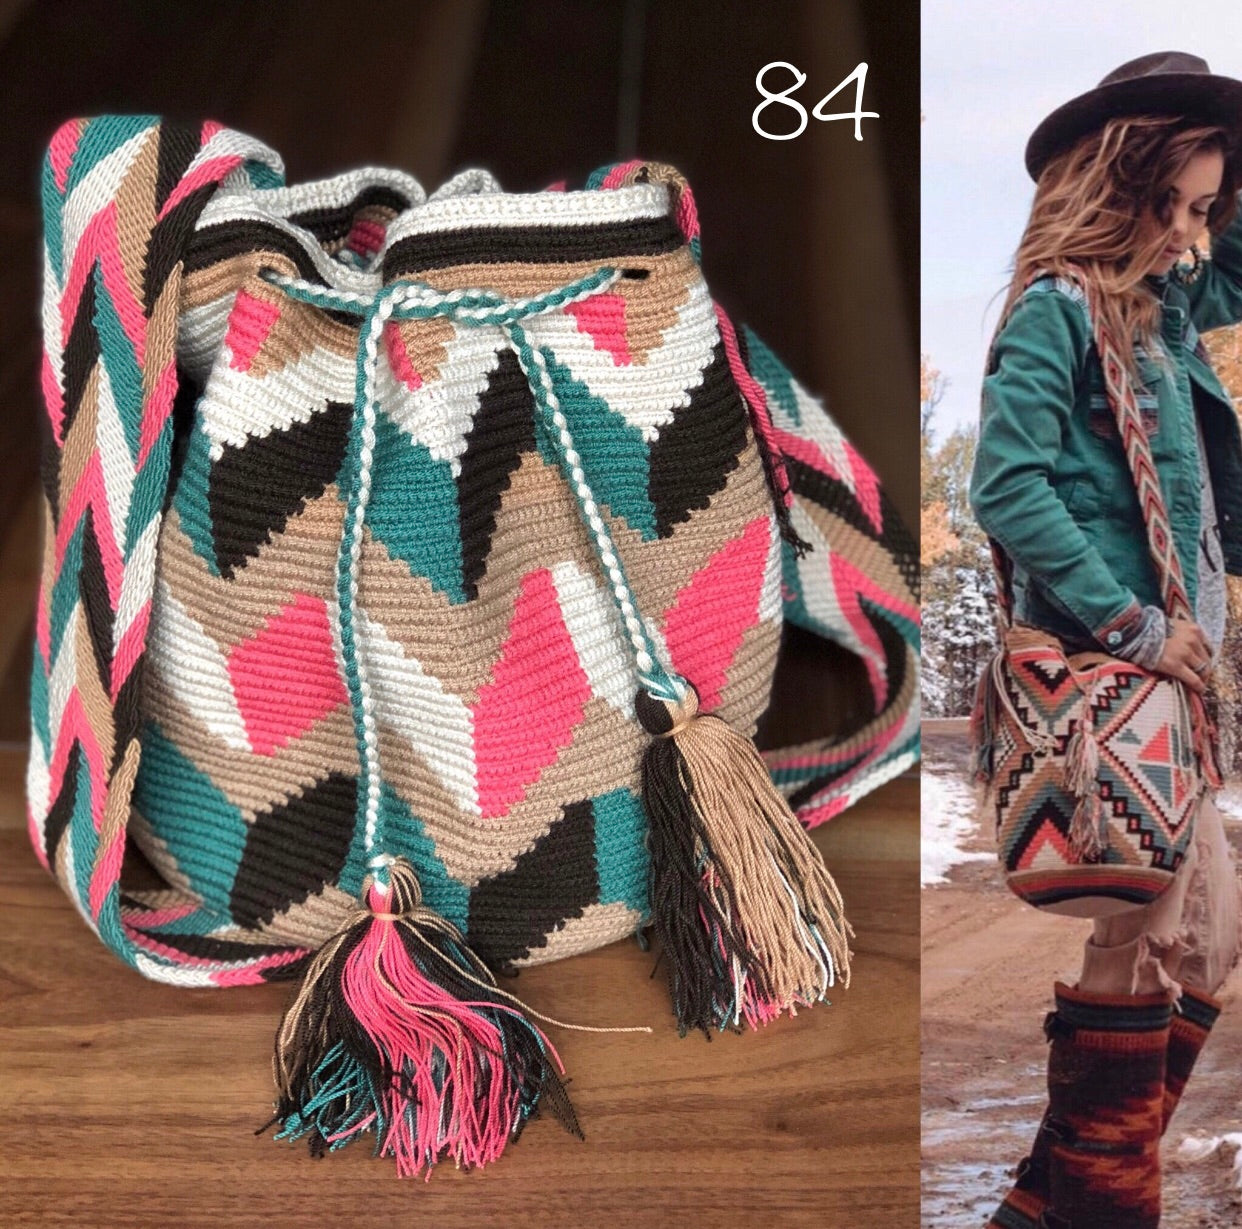 Colorful 4U | Desert Dreams Collection | Crossbody Boho Bags for Fall | Wayuu Mochila | Bohemian Bucket Bag 84-zig zag